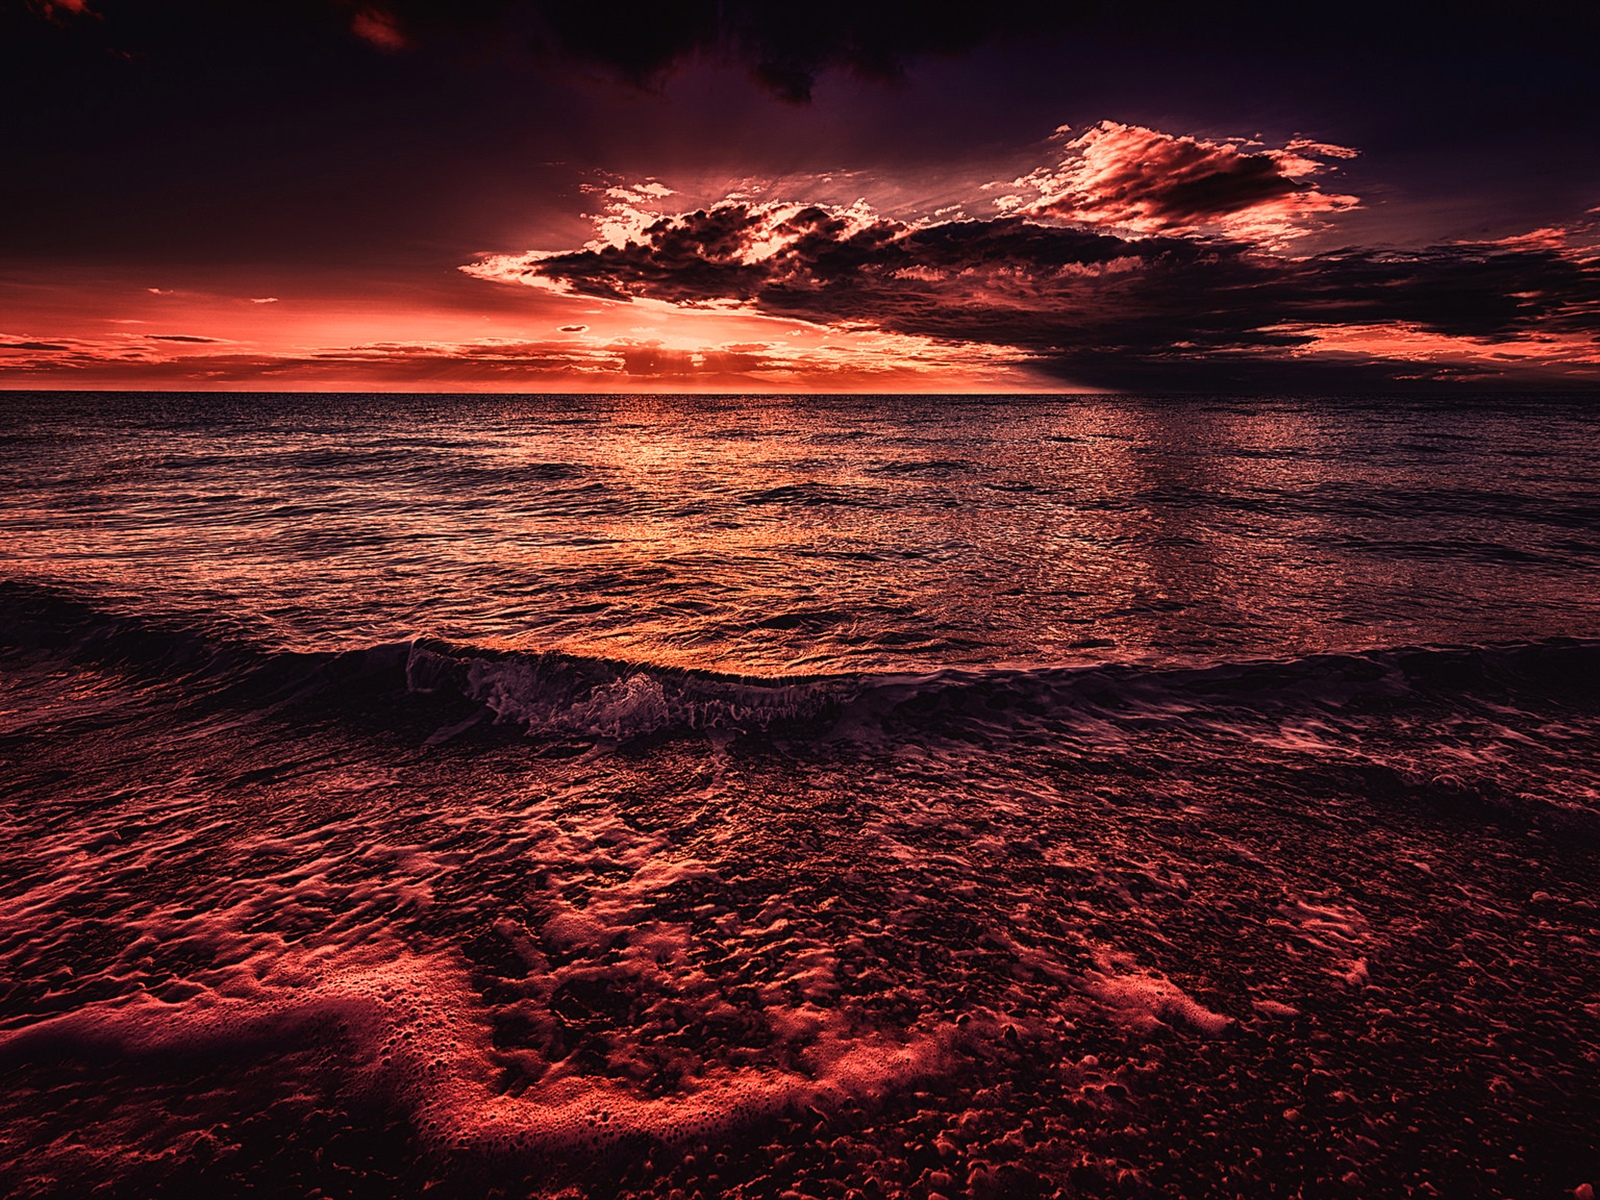 Sea, sunset, evening, red style 1600x1200 wallpaper